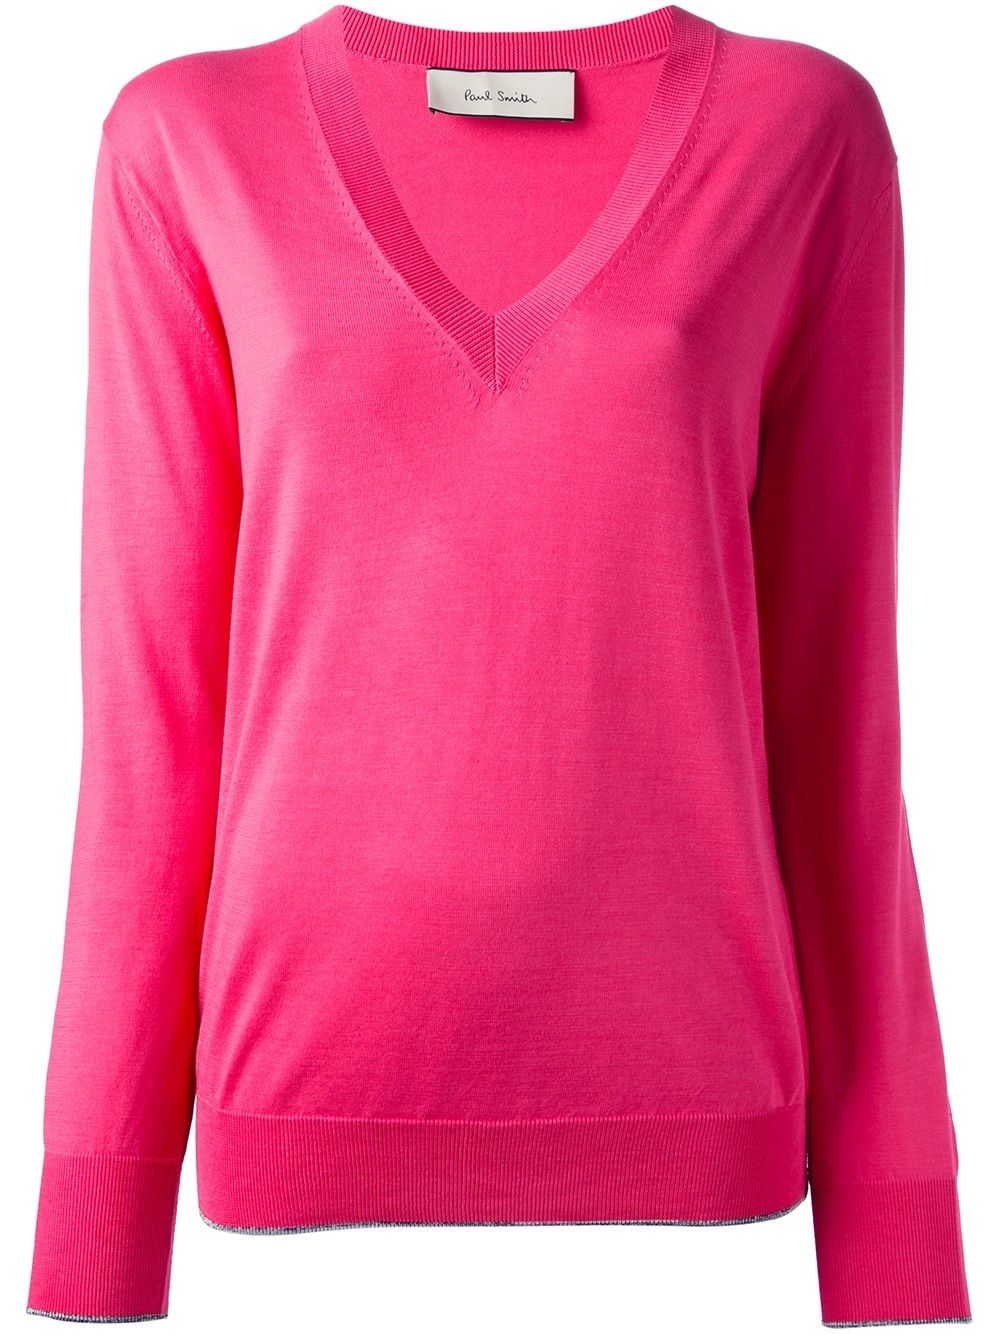 Paul smith V-neck Sweater in Pink | Lyst